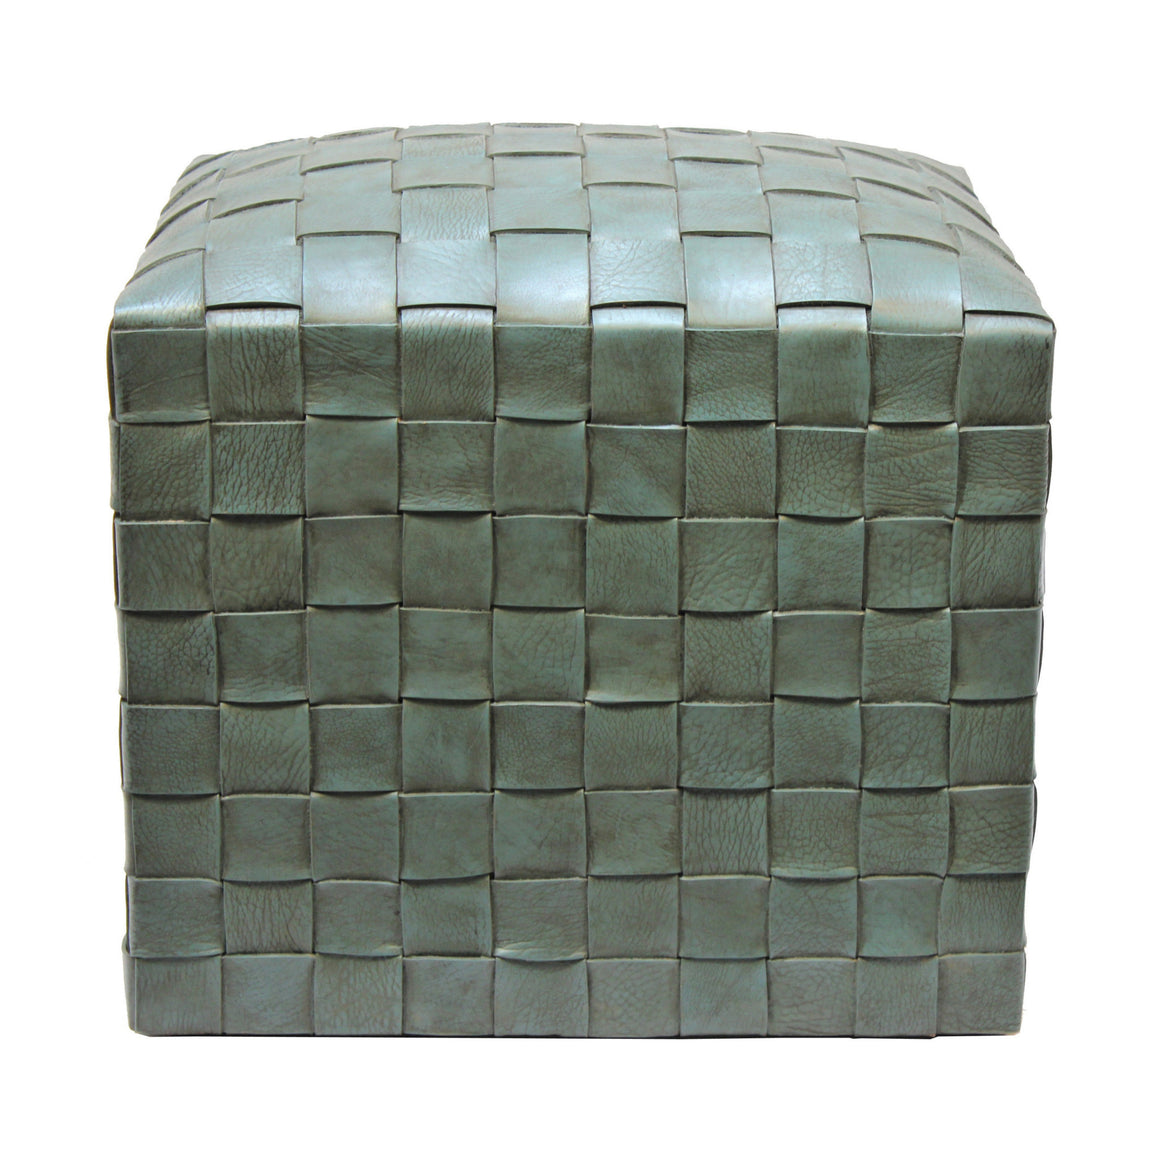 Brooklin Woven Leather Pouf, Turquoise